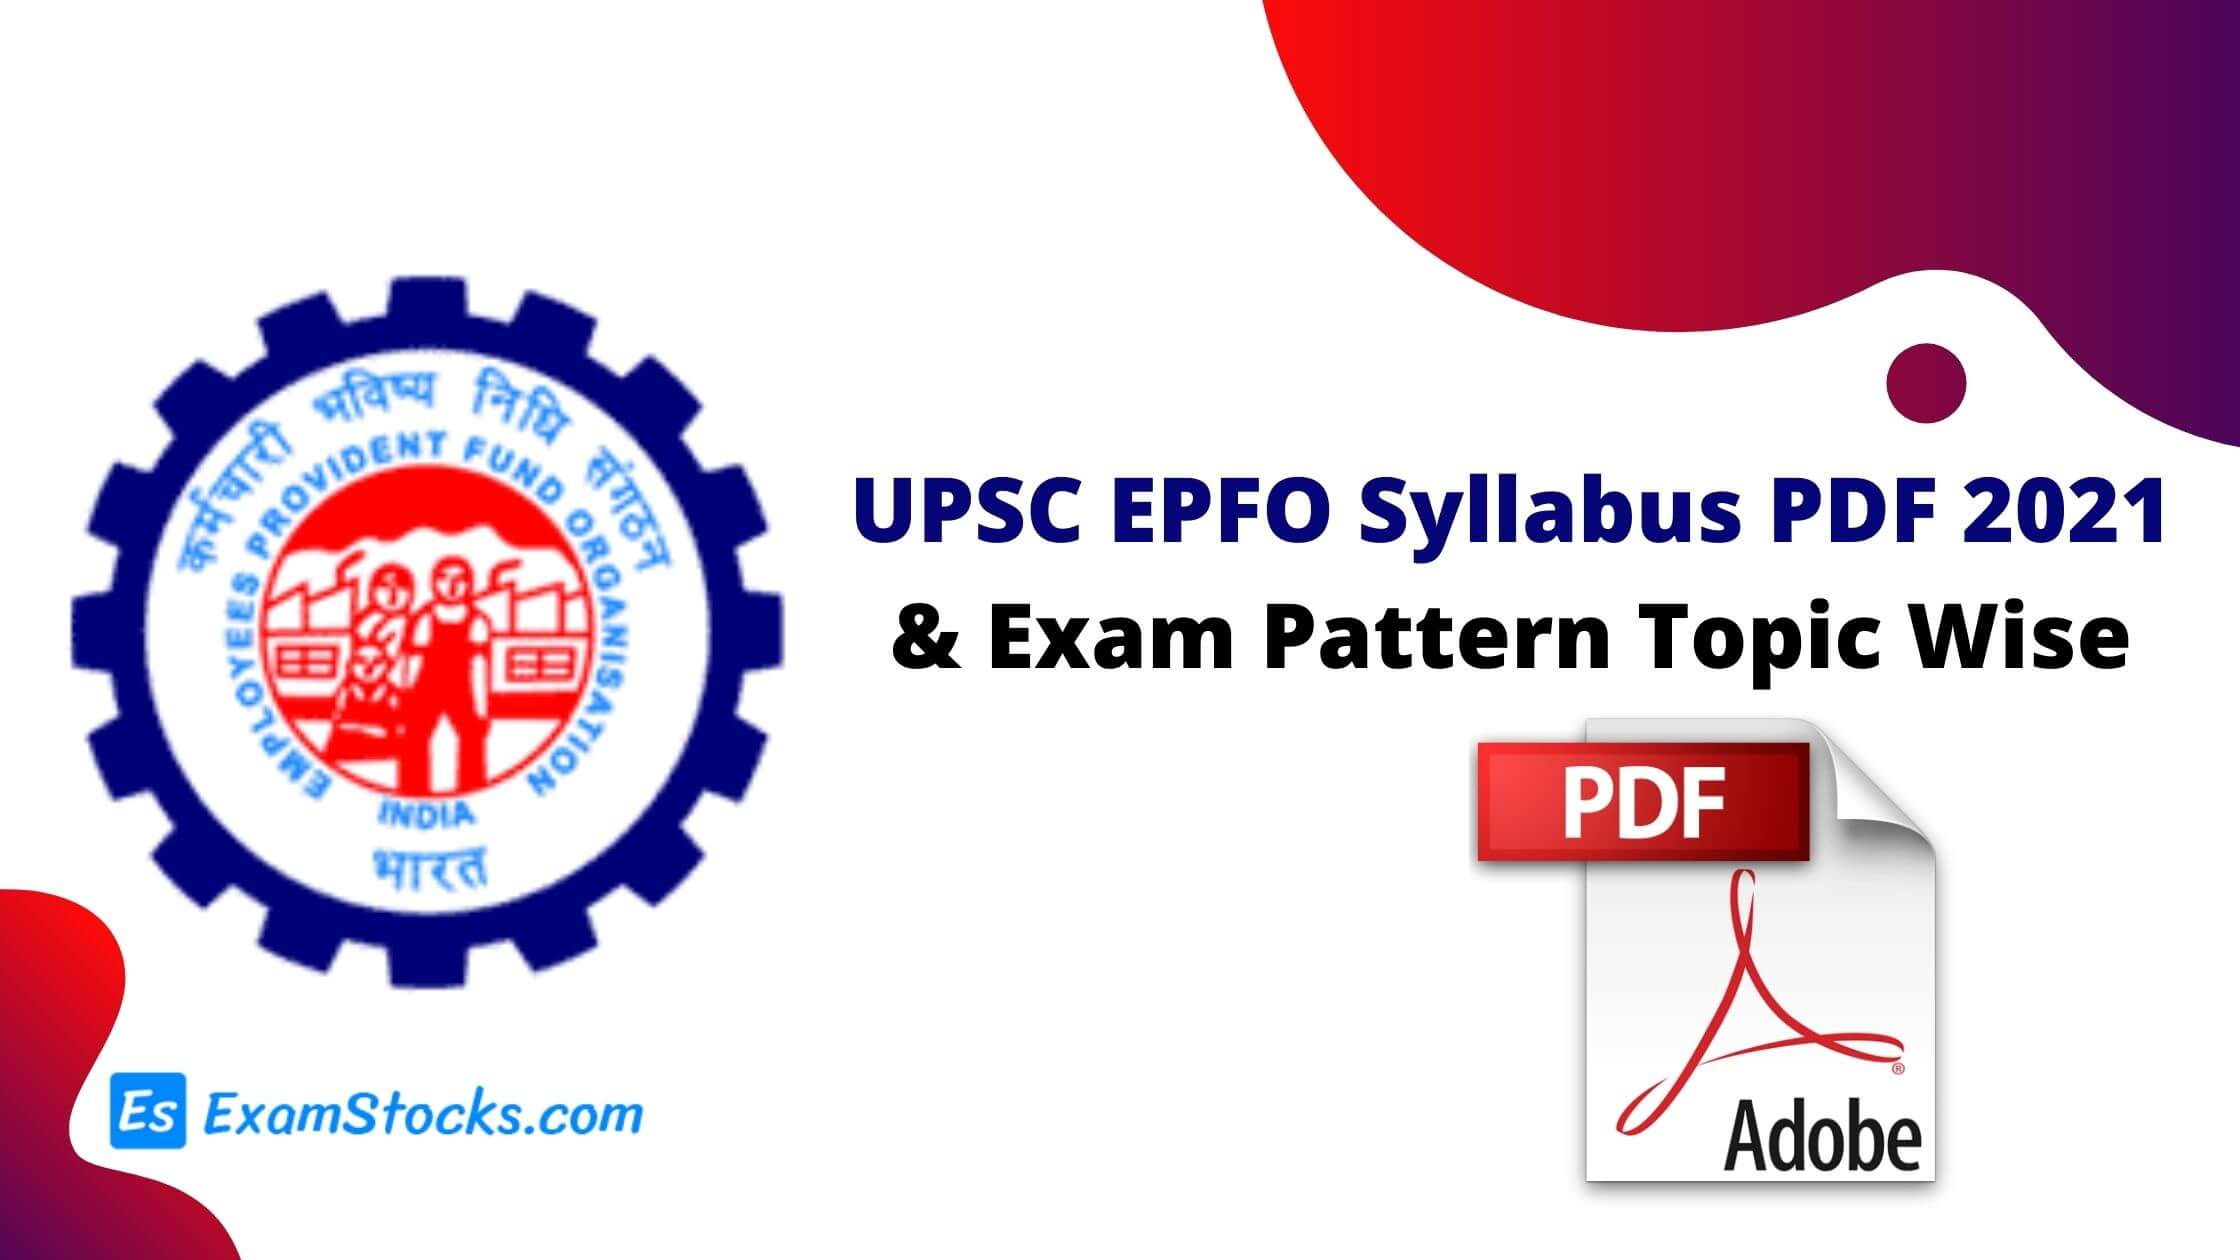 UPSC EPFO Syllabus PDF 2021 & Exam Pattern Topic Wise